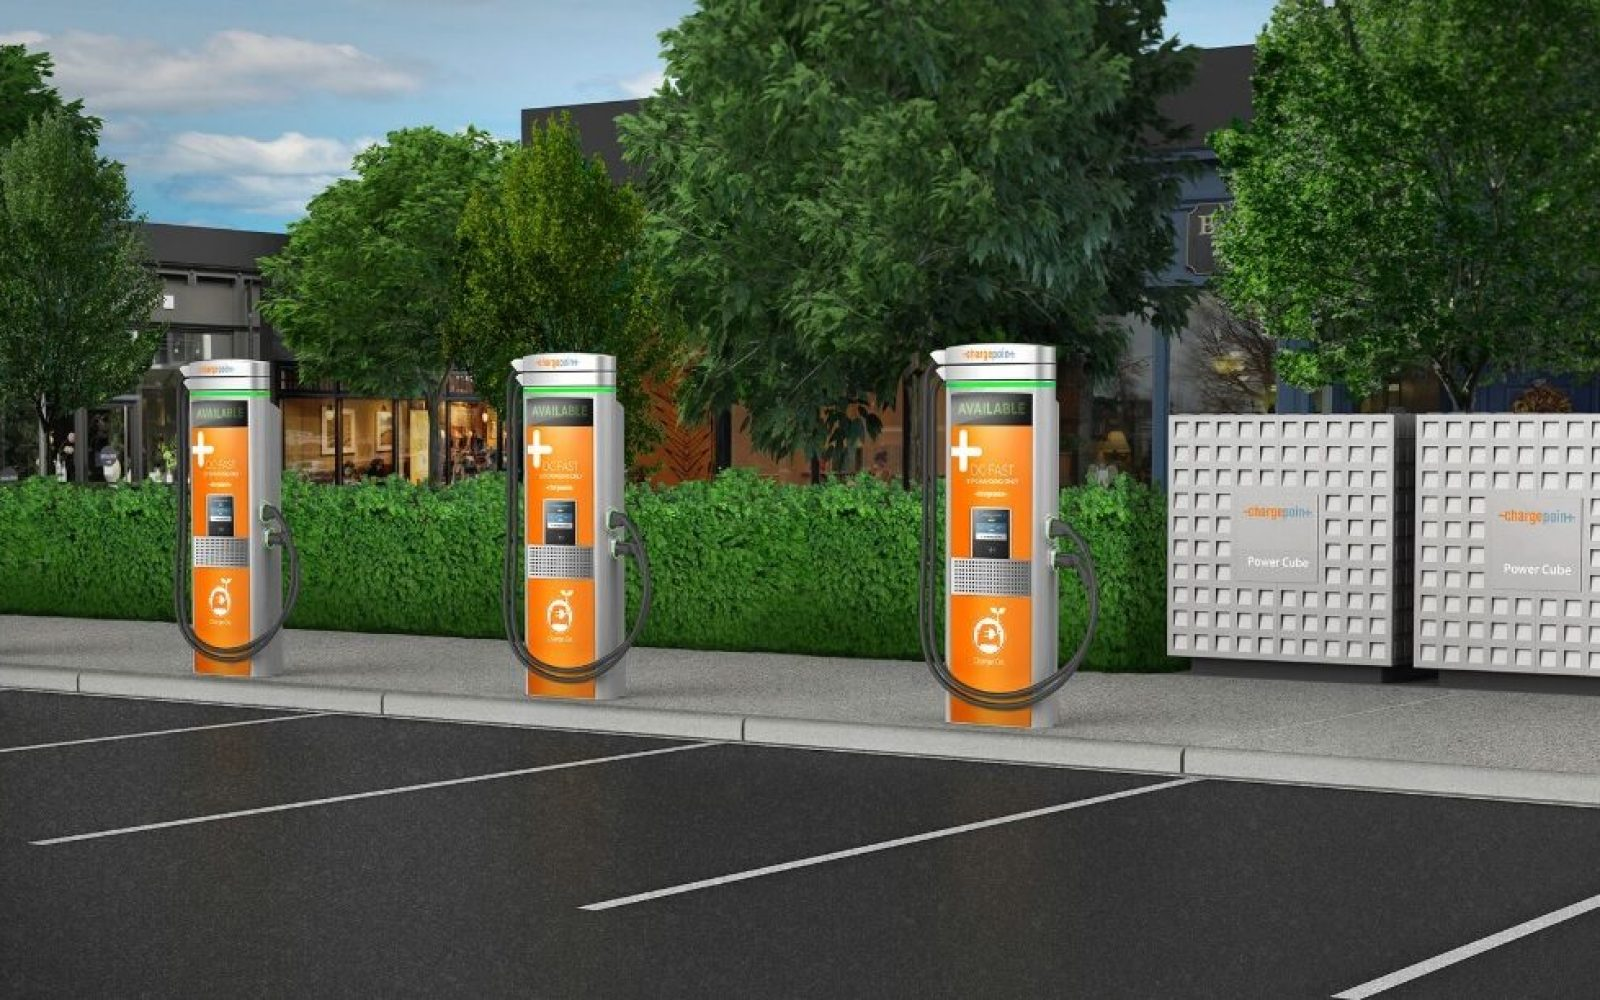 Chargepoint announces 400 kW charging, adds 100 miles of electric vehicle range in less than 15 minutes